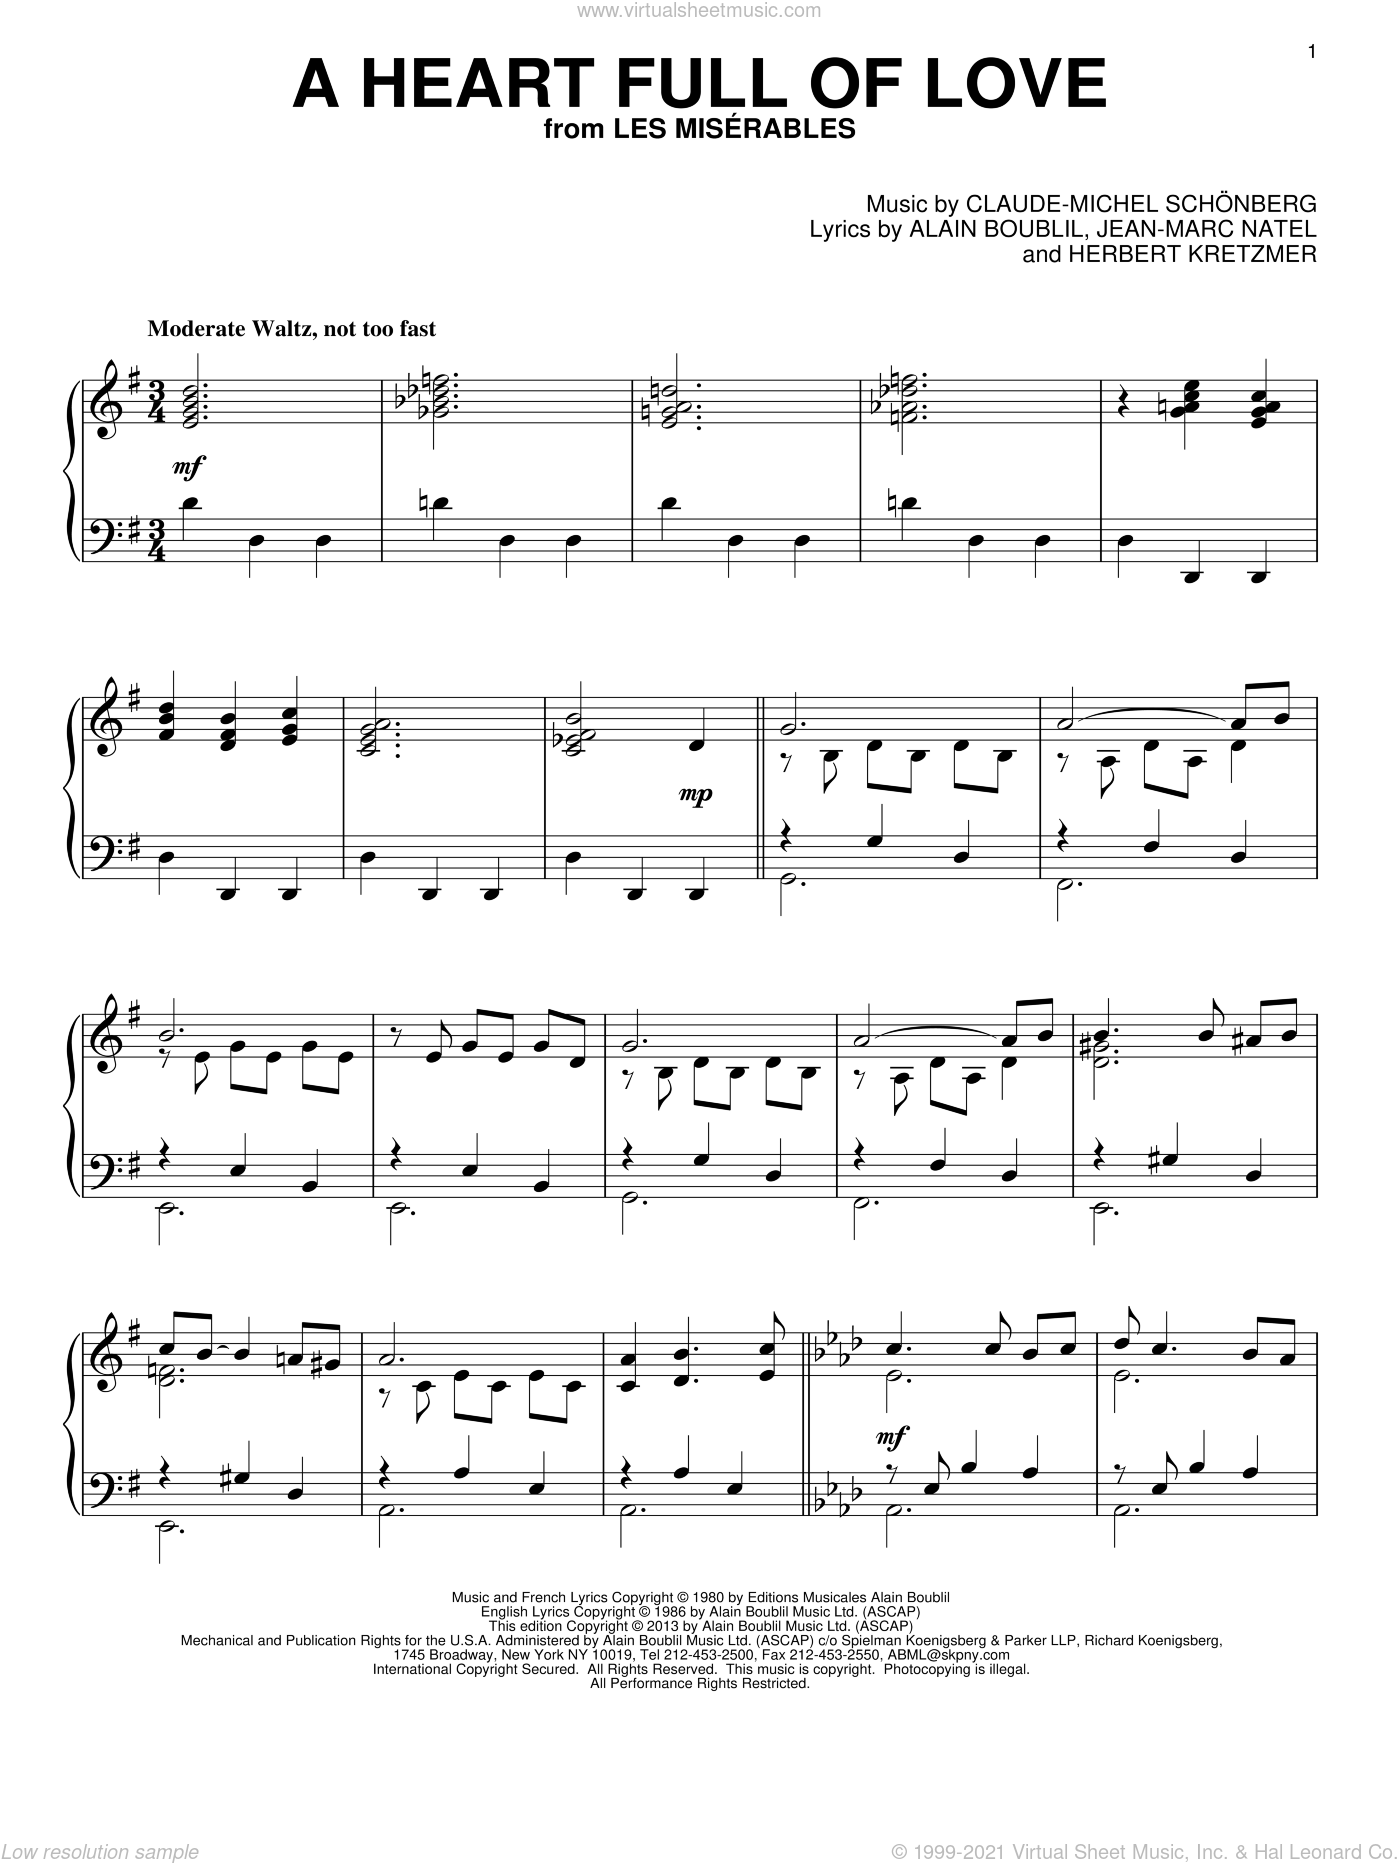 A Heart Full Of Love sheet music for piano solo by Alain Boublil